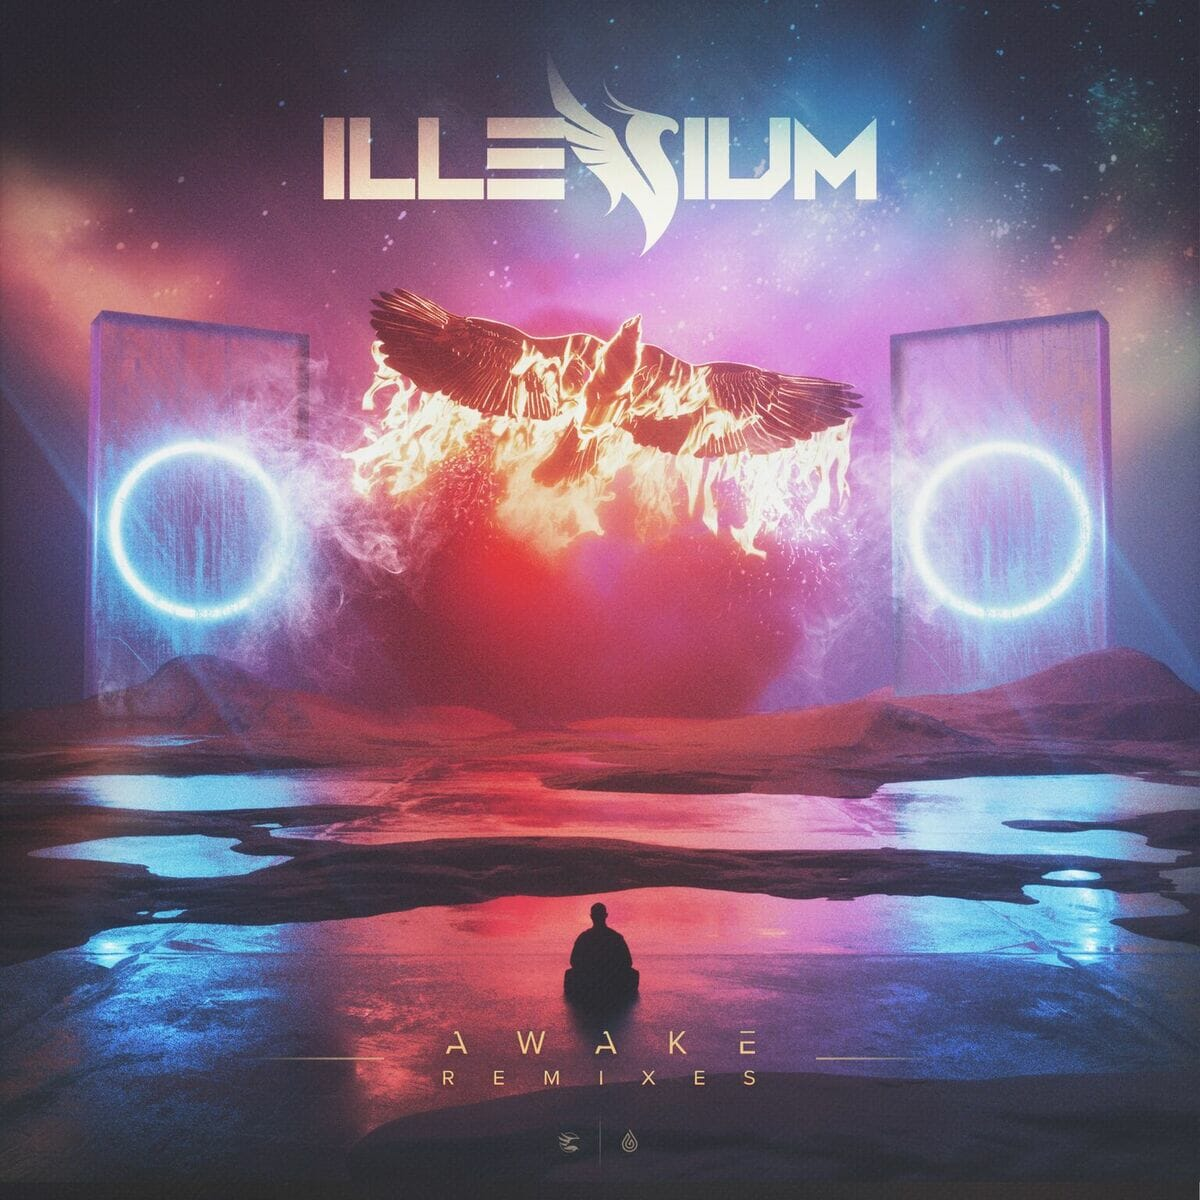 Free Fall Wallpaper Pics Illenium Stuns With 15 Track Remix Package For Awake